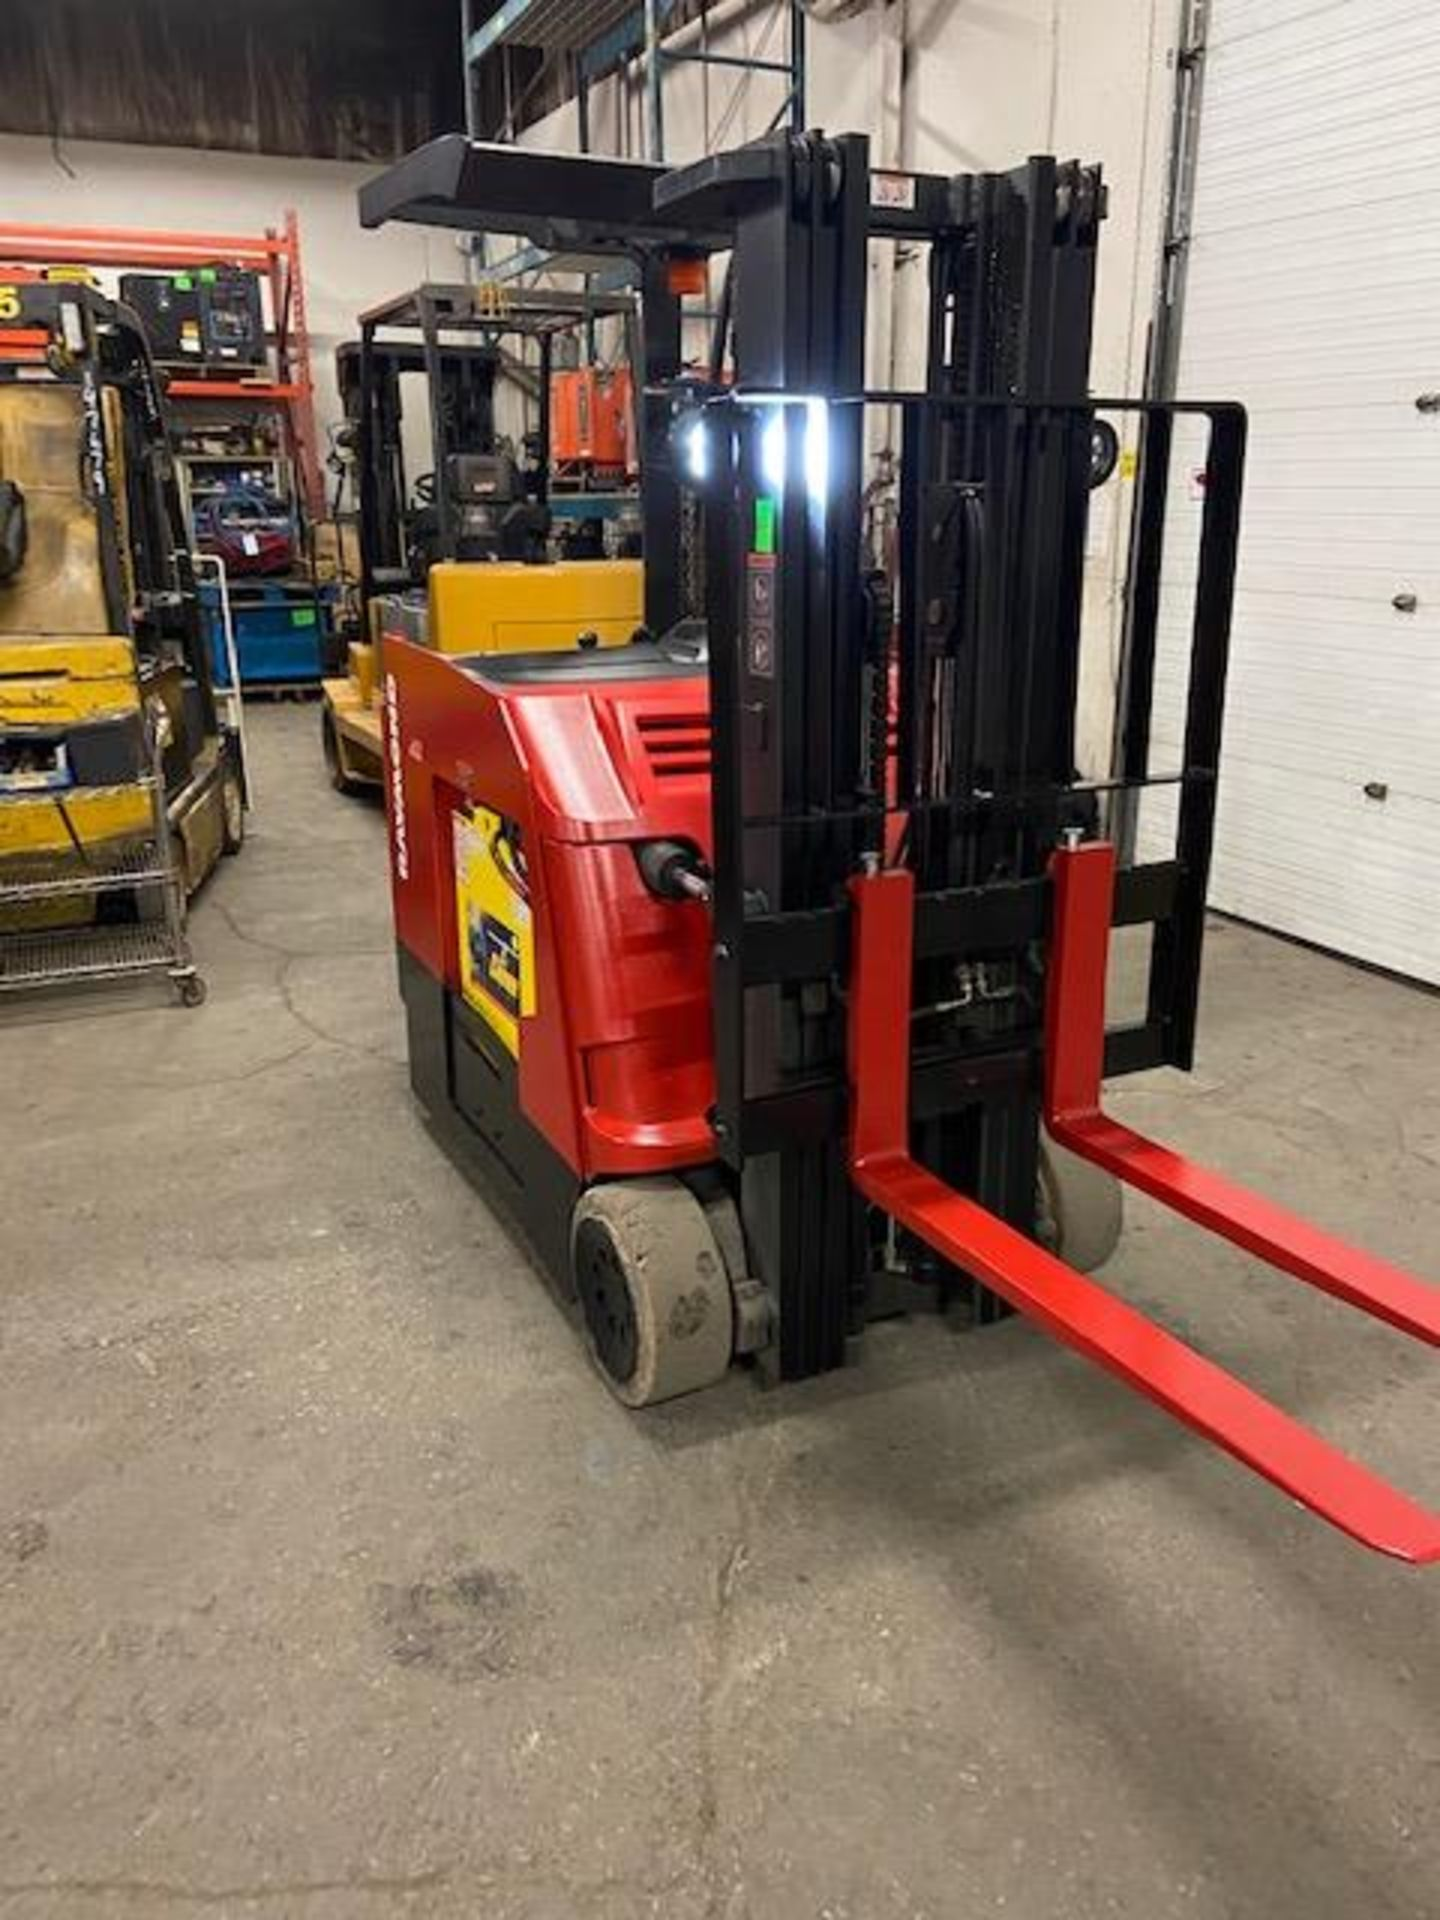 FREE CUSTOMS - 2014 Raymond 4000lbs Capacity Stand On Forklift Electric with 3-stage mast - Image 2 of 3